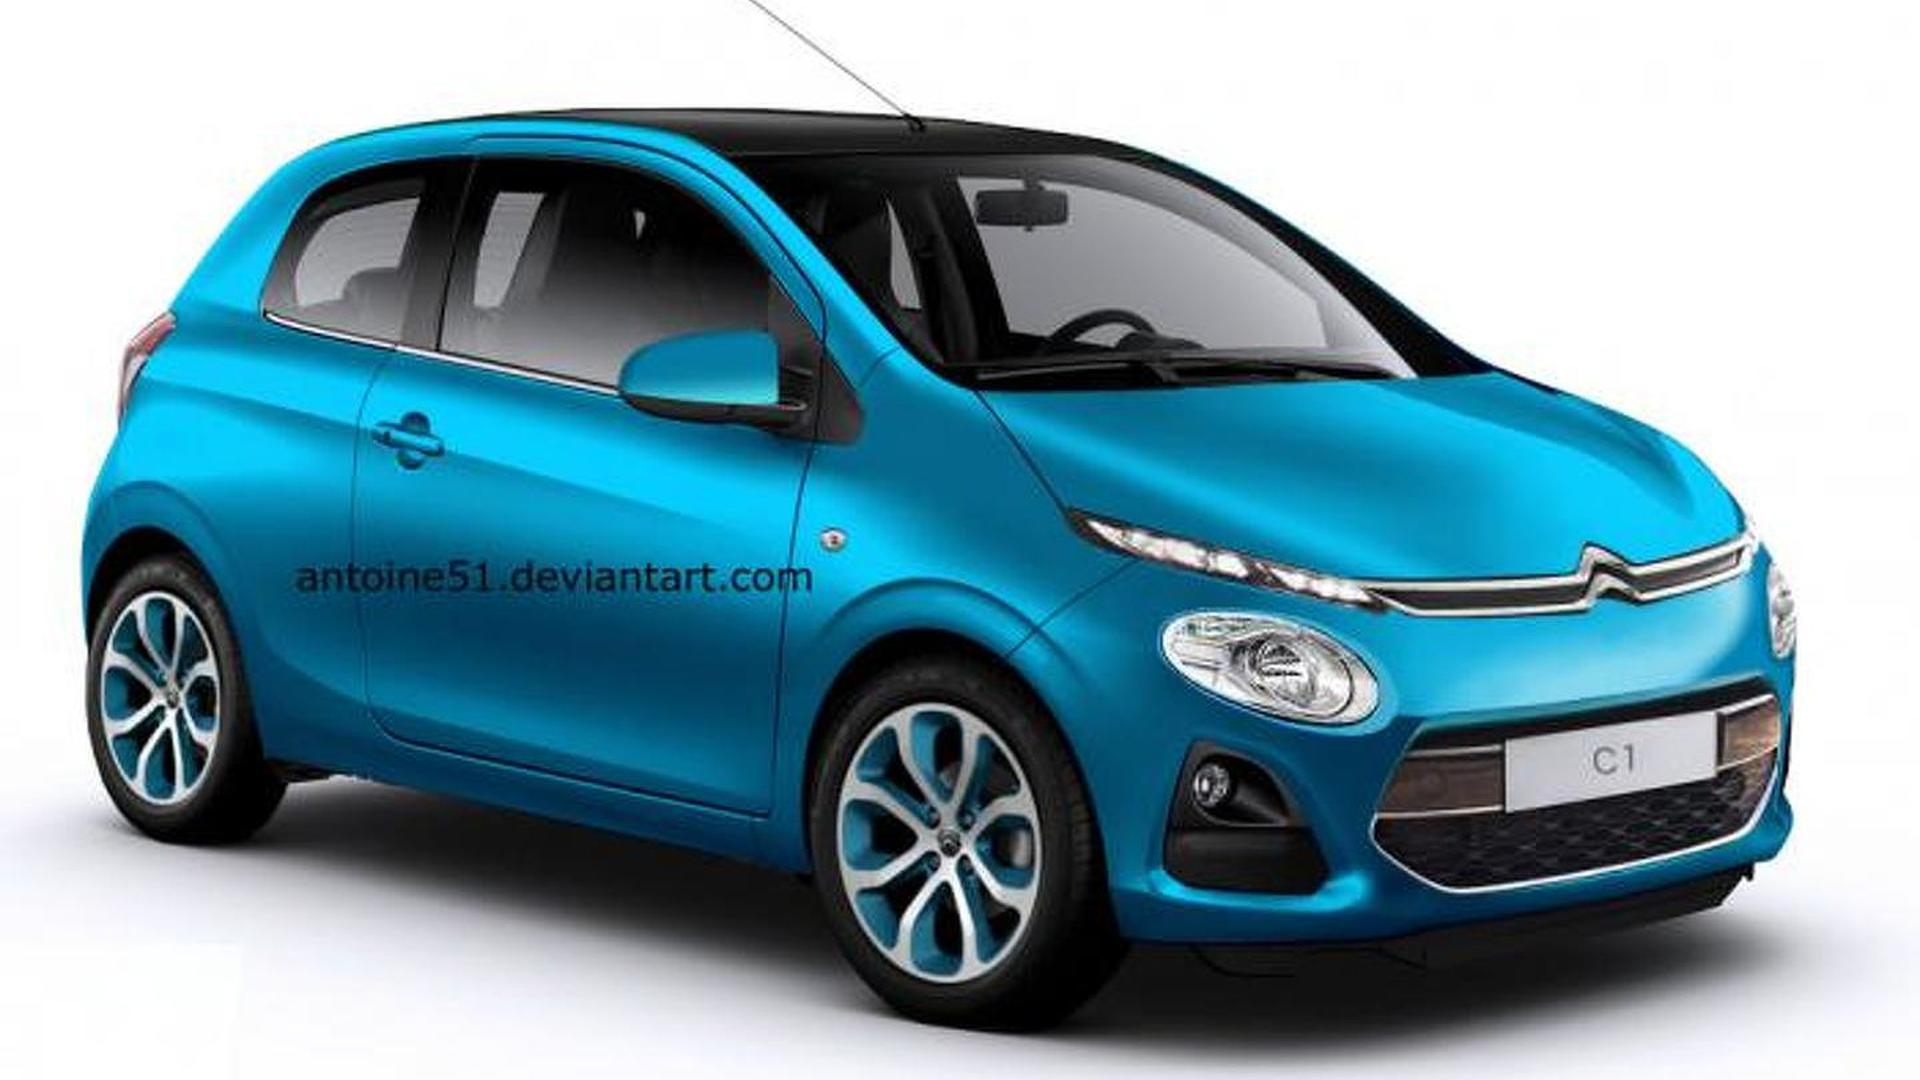 Well, that was fast - Citroen C1 rendering appears online